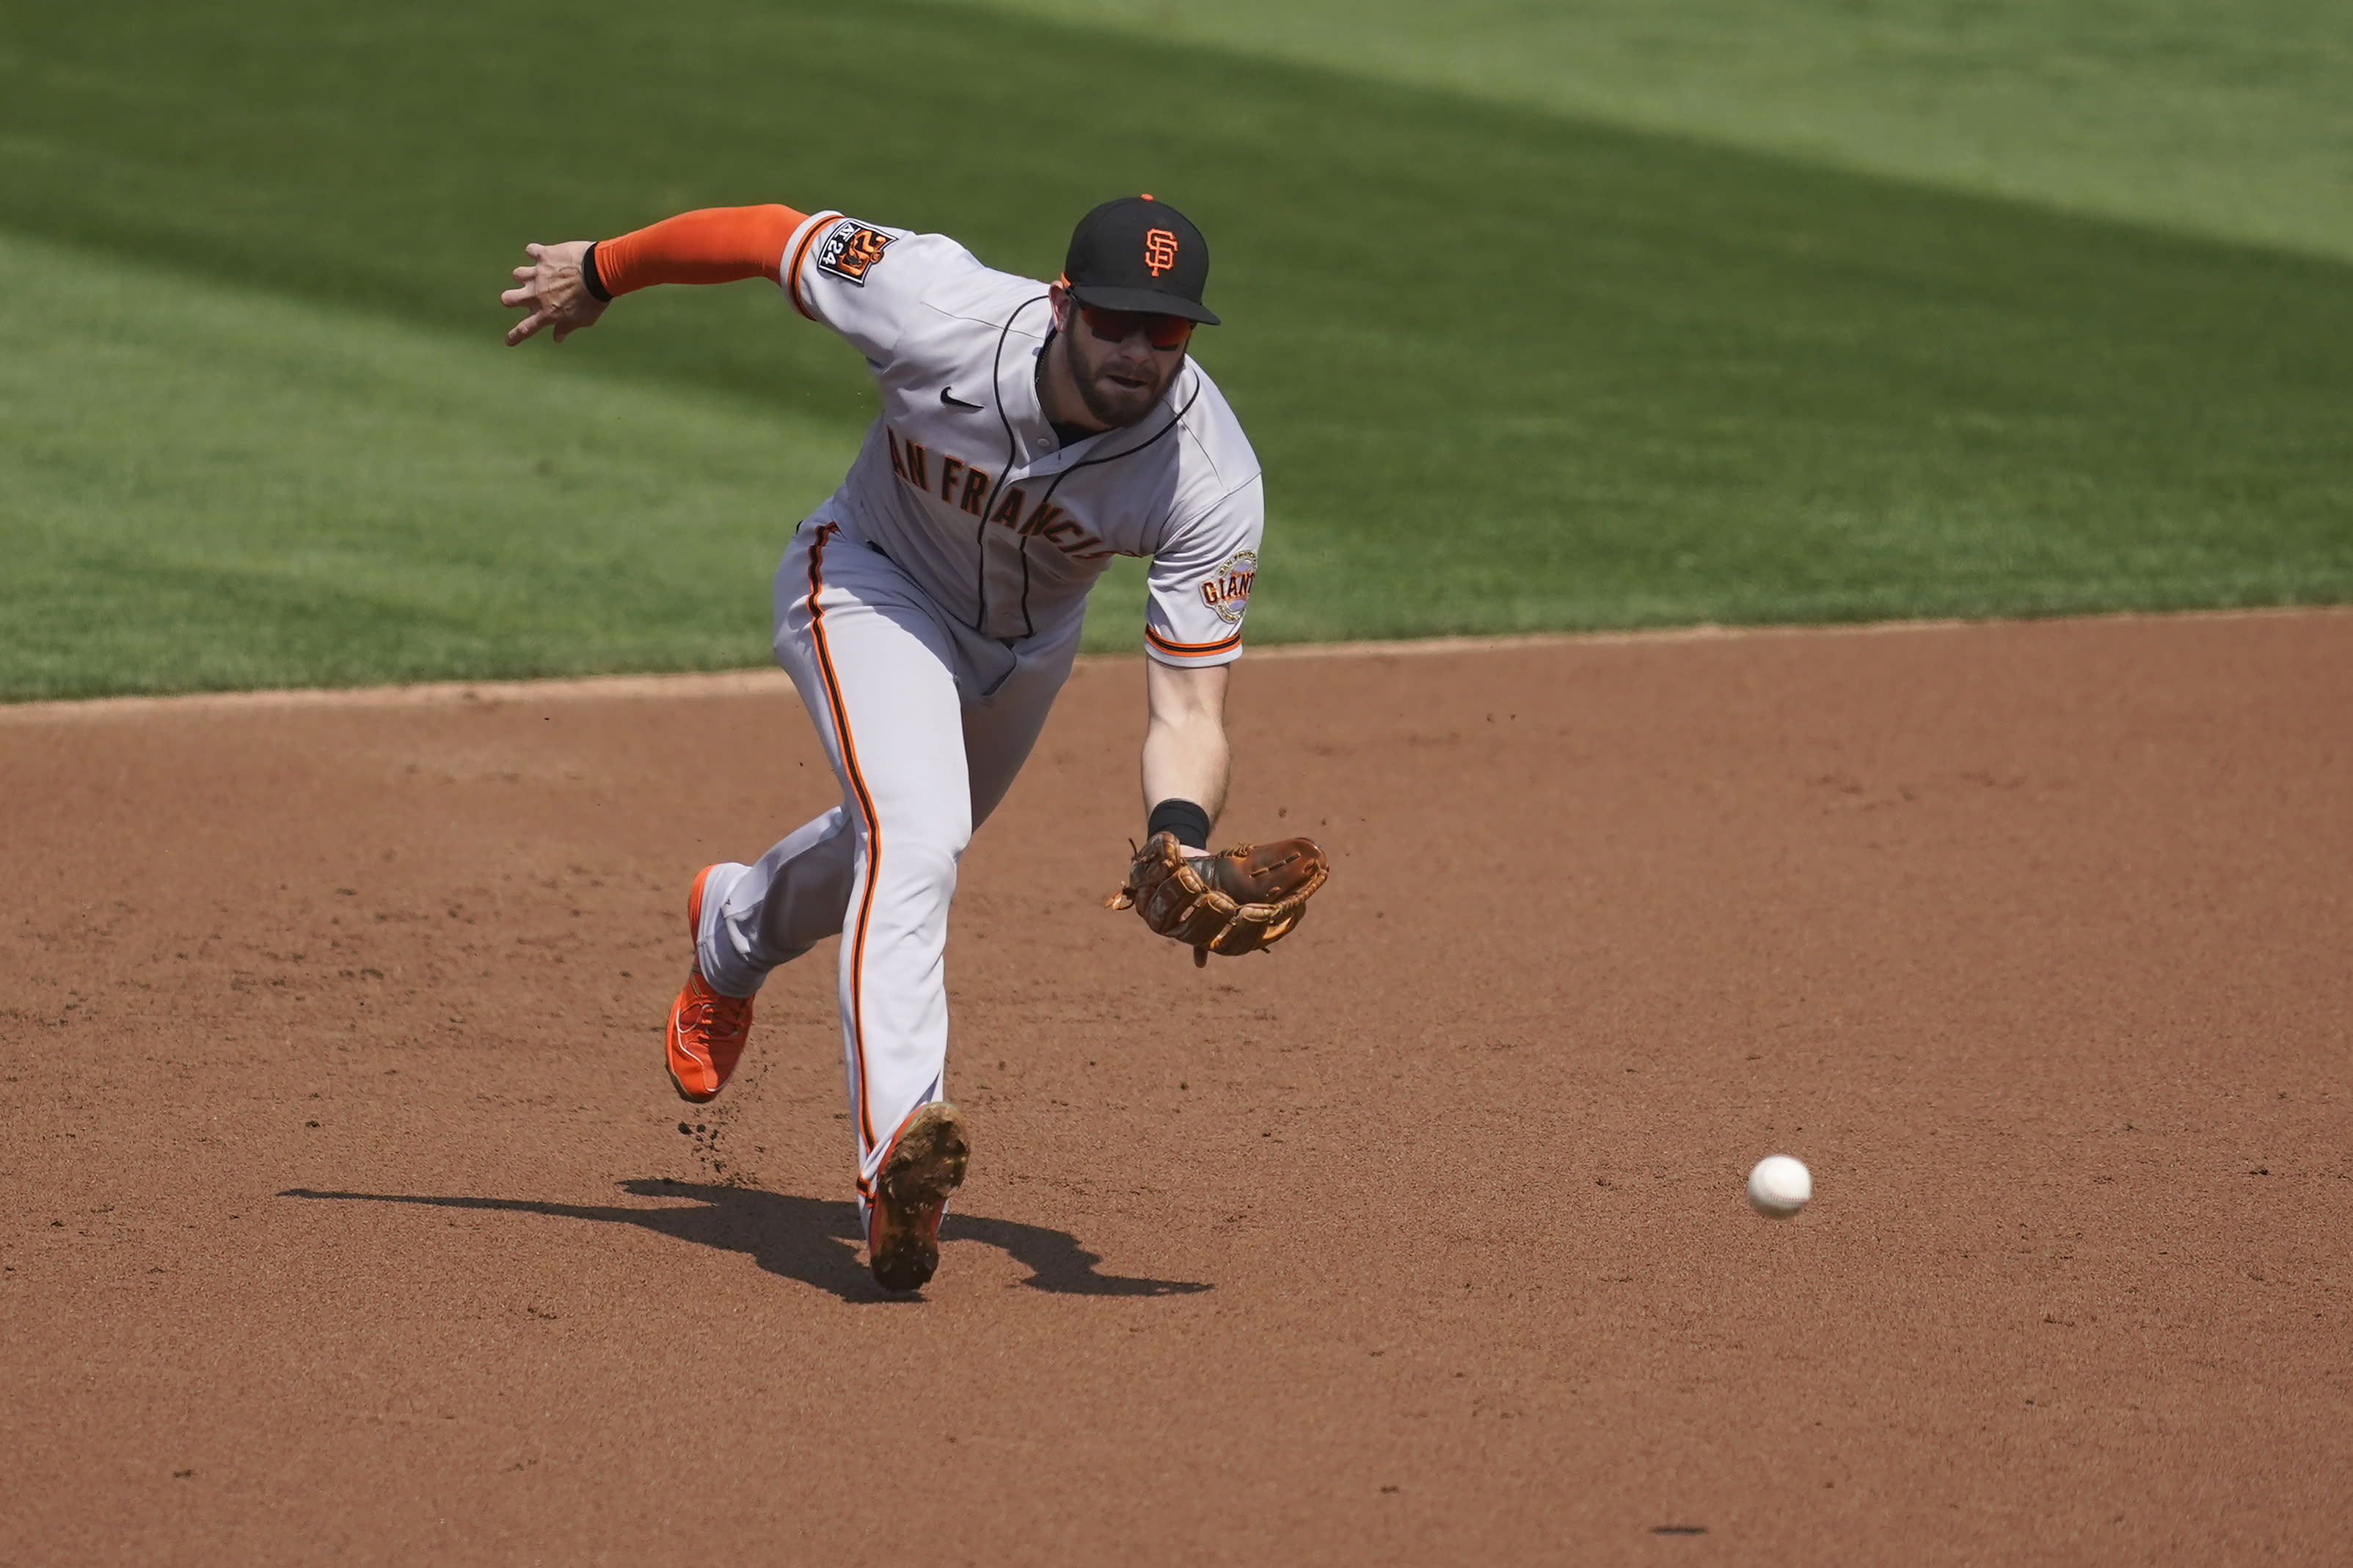 San Francisco Giants third baseman Evan Longoria fields Oakland Athletics' Mark Canha's groundout during the first inning of a baseball game in Oakland, Calif., Sunday, Sept. 20, 2020. (AP Photo/Jeff Chiu)